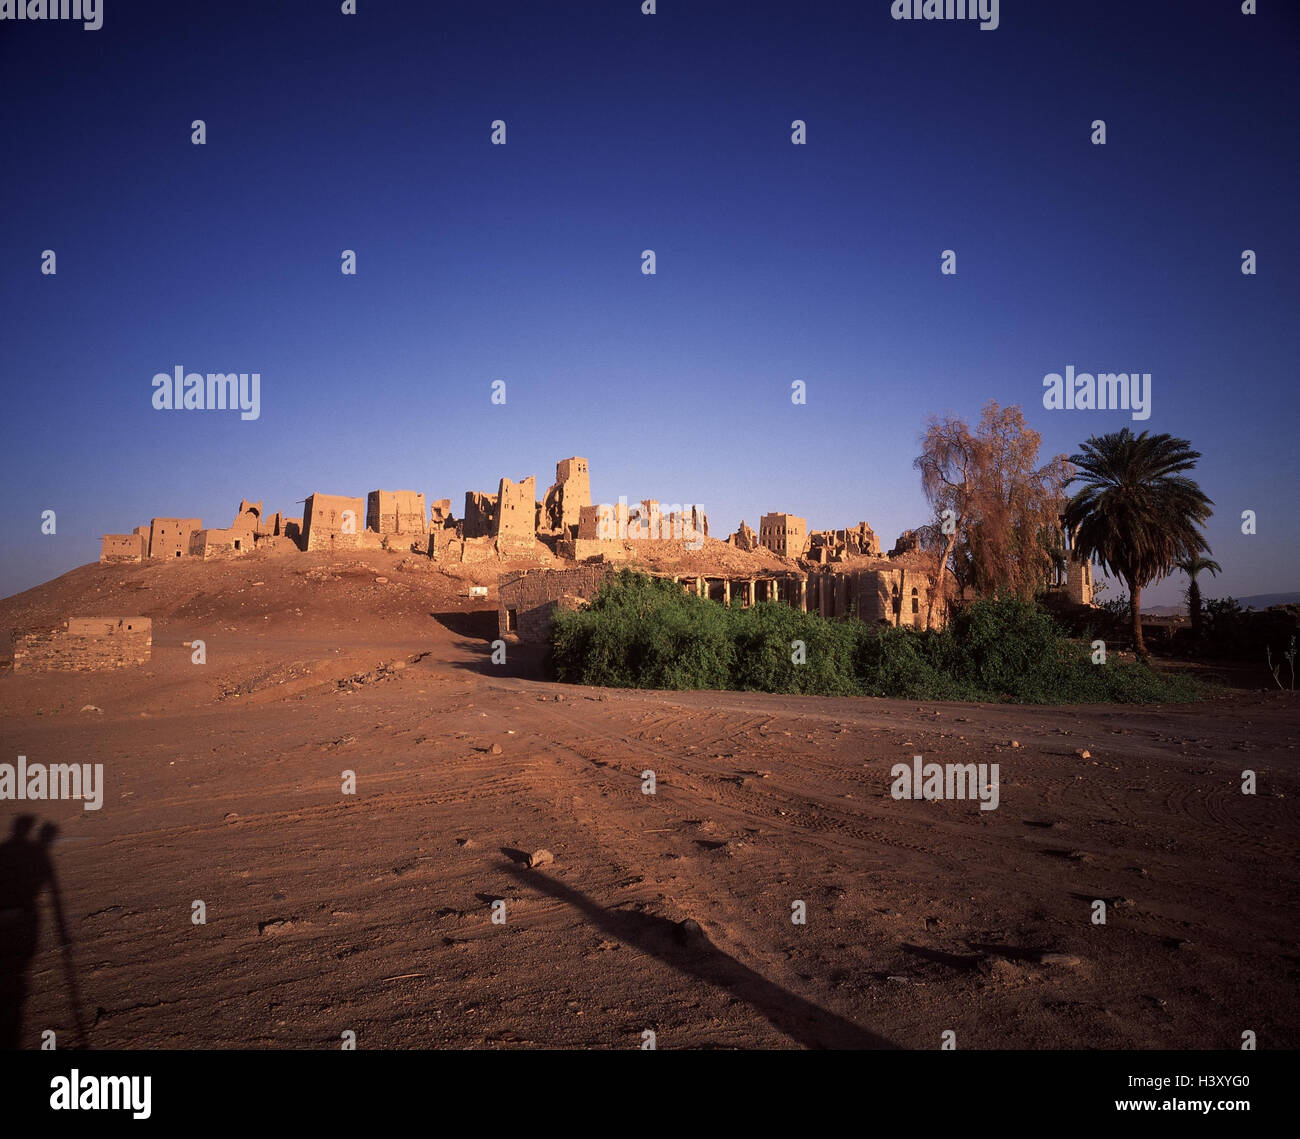 Yemen, Alt-Marib, town view, Arabia, alto-in Arabic, peninsula, mucky construction, Old Town, decayed houses, mucky - Stock Image